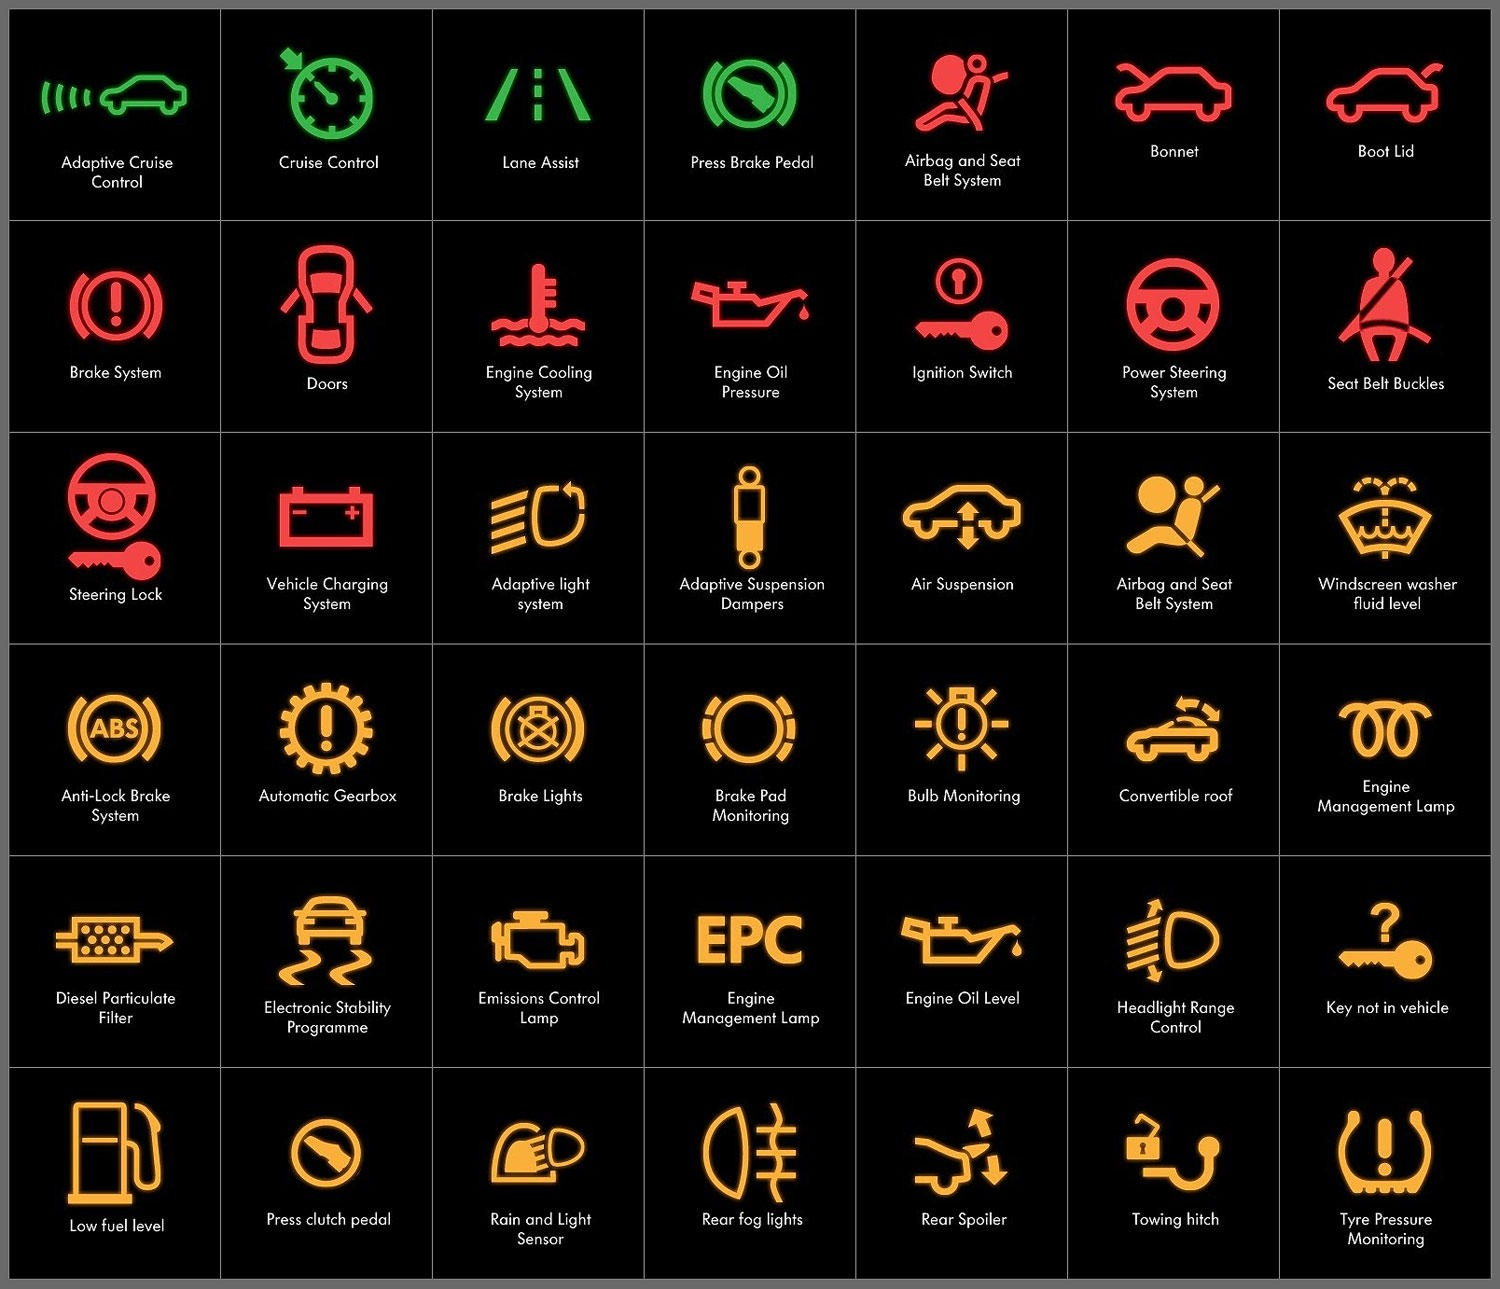 7 bad driving habits that damage your car generically speaking ignoring caution signs of the car witness lights on board table symbols signs explanations biocorpaavc Choice Image